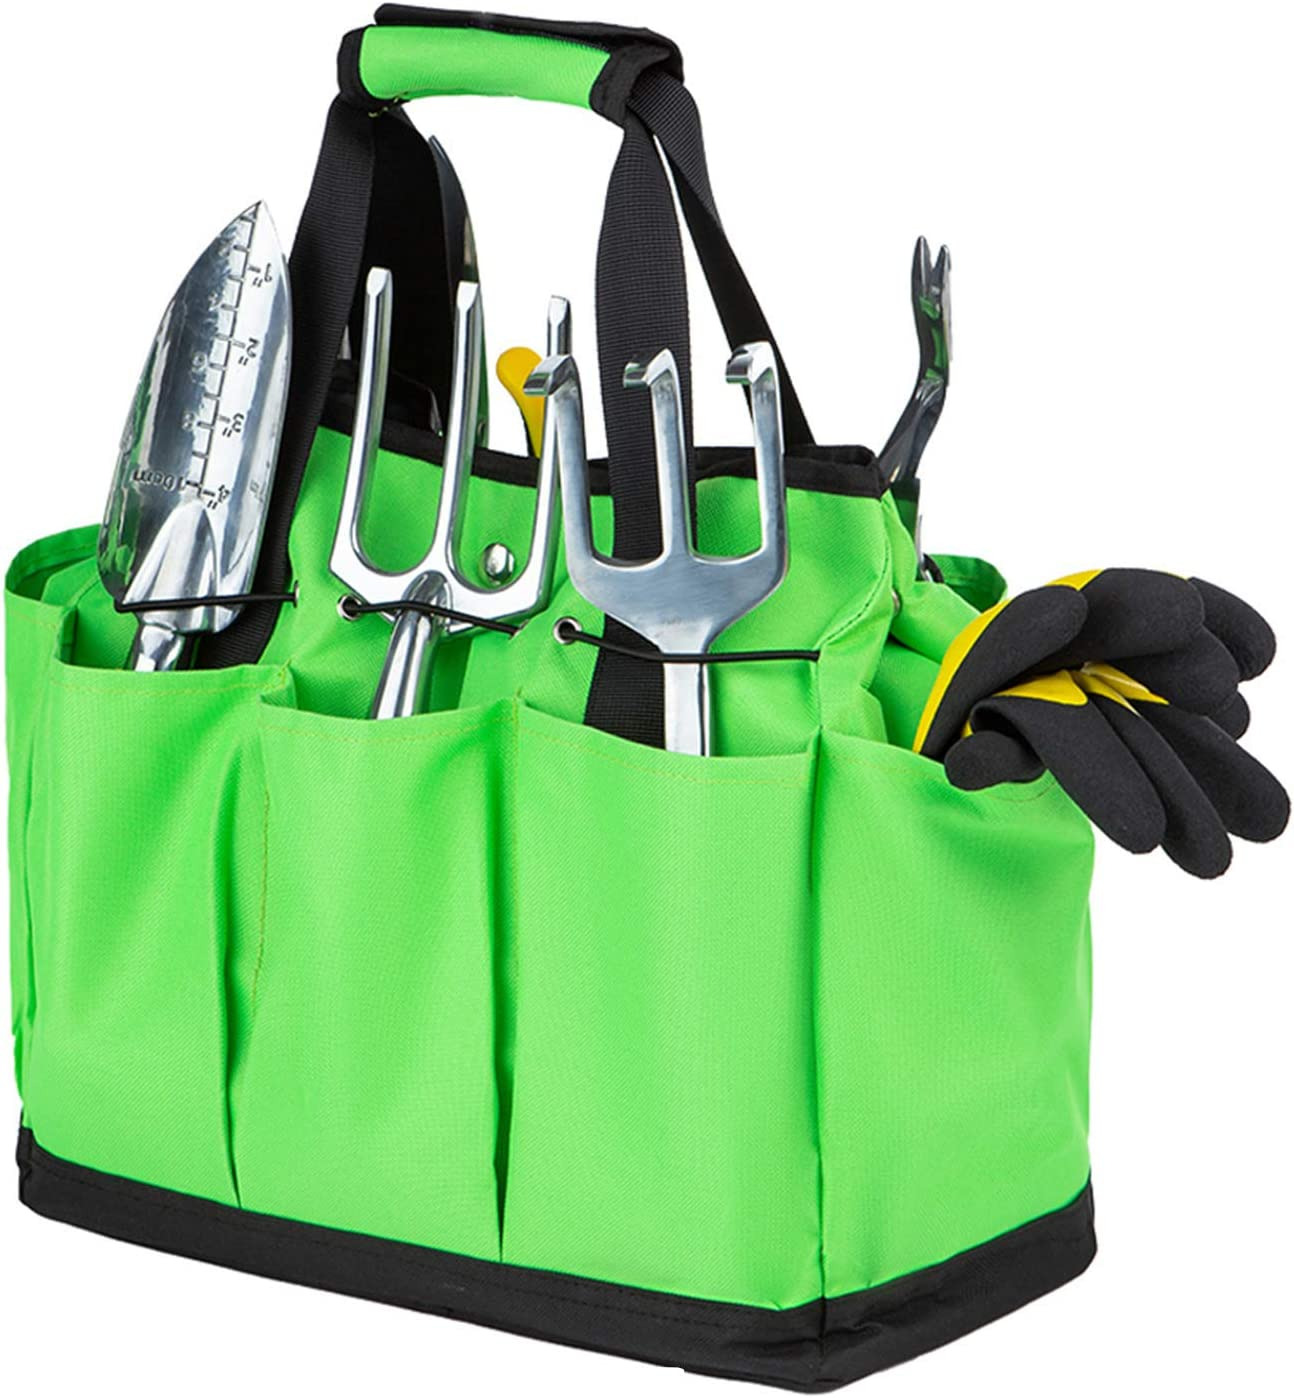 Fragralley Self - Standing Garden Tool Bag, Heavy-Duty Gardening Pouch with 8 Pockets and Leather Handle, Gardening Tote Bag for Indoor and Outdoor (Tools NOT Included)